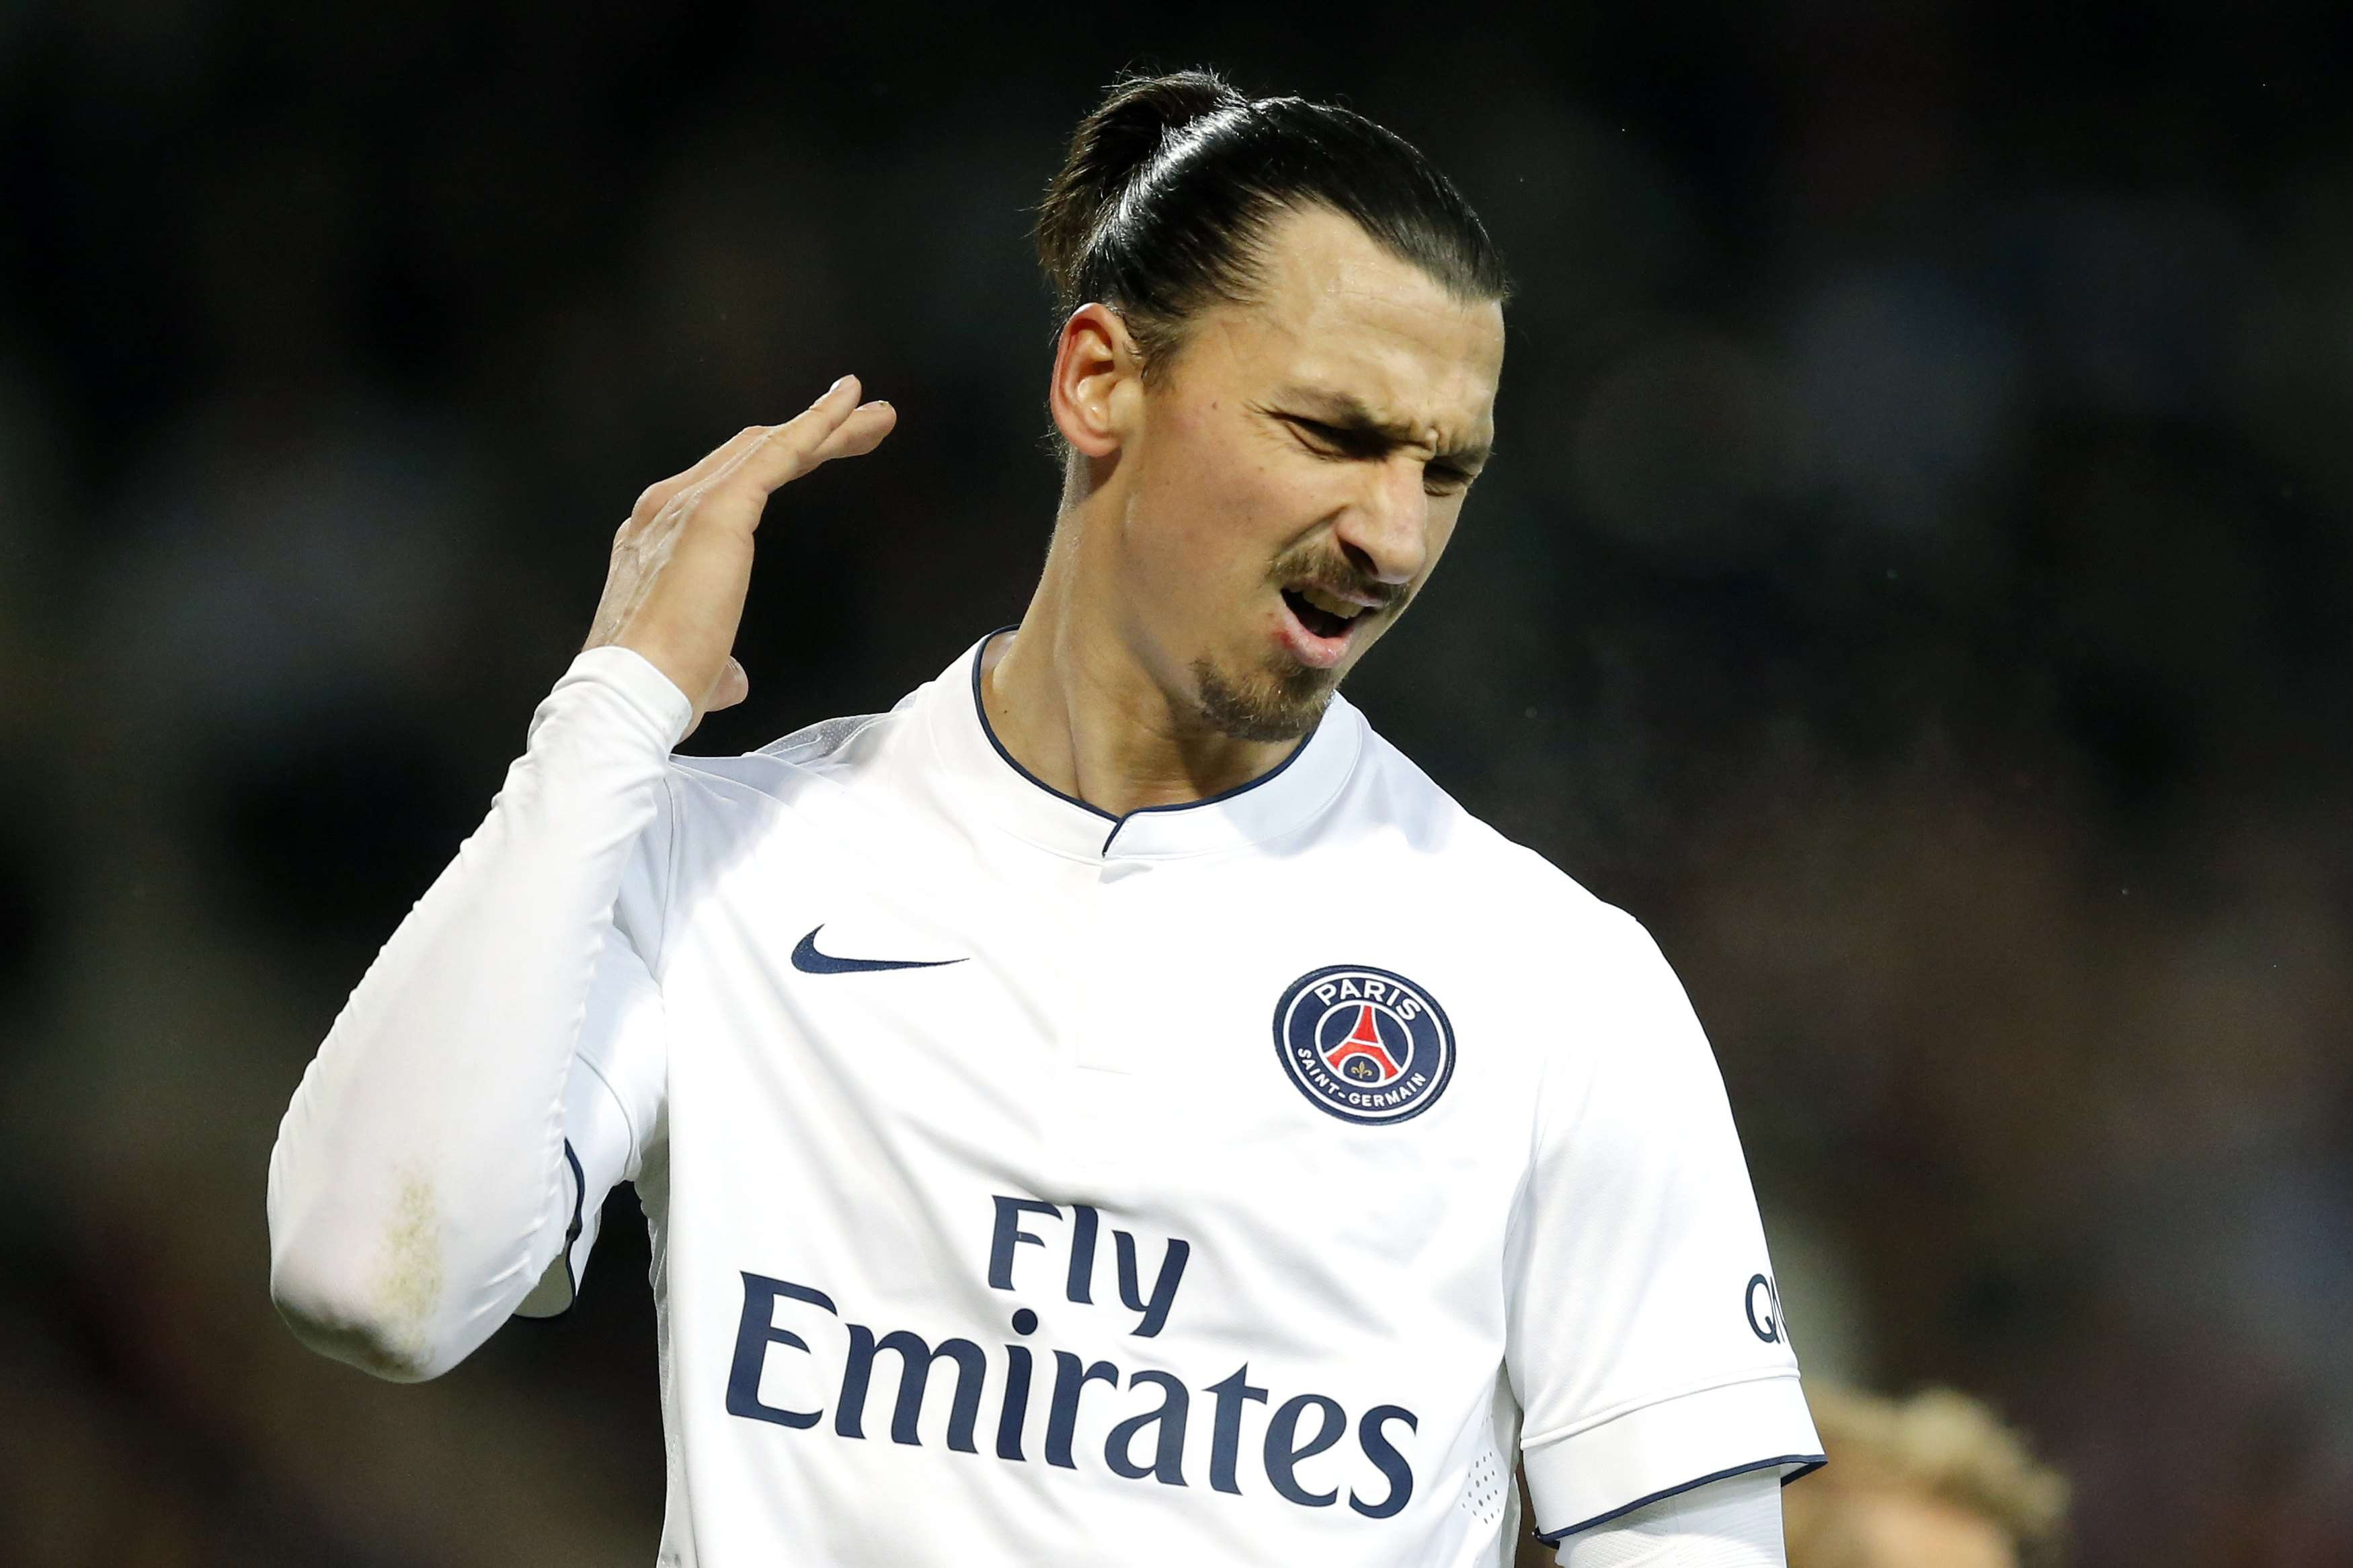 Paris St Germain's Zlatan Ibrahimovic reacts after missing an opportunity to score during their French Ligue 1 soccer match against Guingamp at the Roudourou stadium in Guingamp, December 14, 2014. REUTERS/Stephane Mahe (FRANCE - Tags: SPORT SOCCER) Foto: STEPHANE MAHE/REUTERS